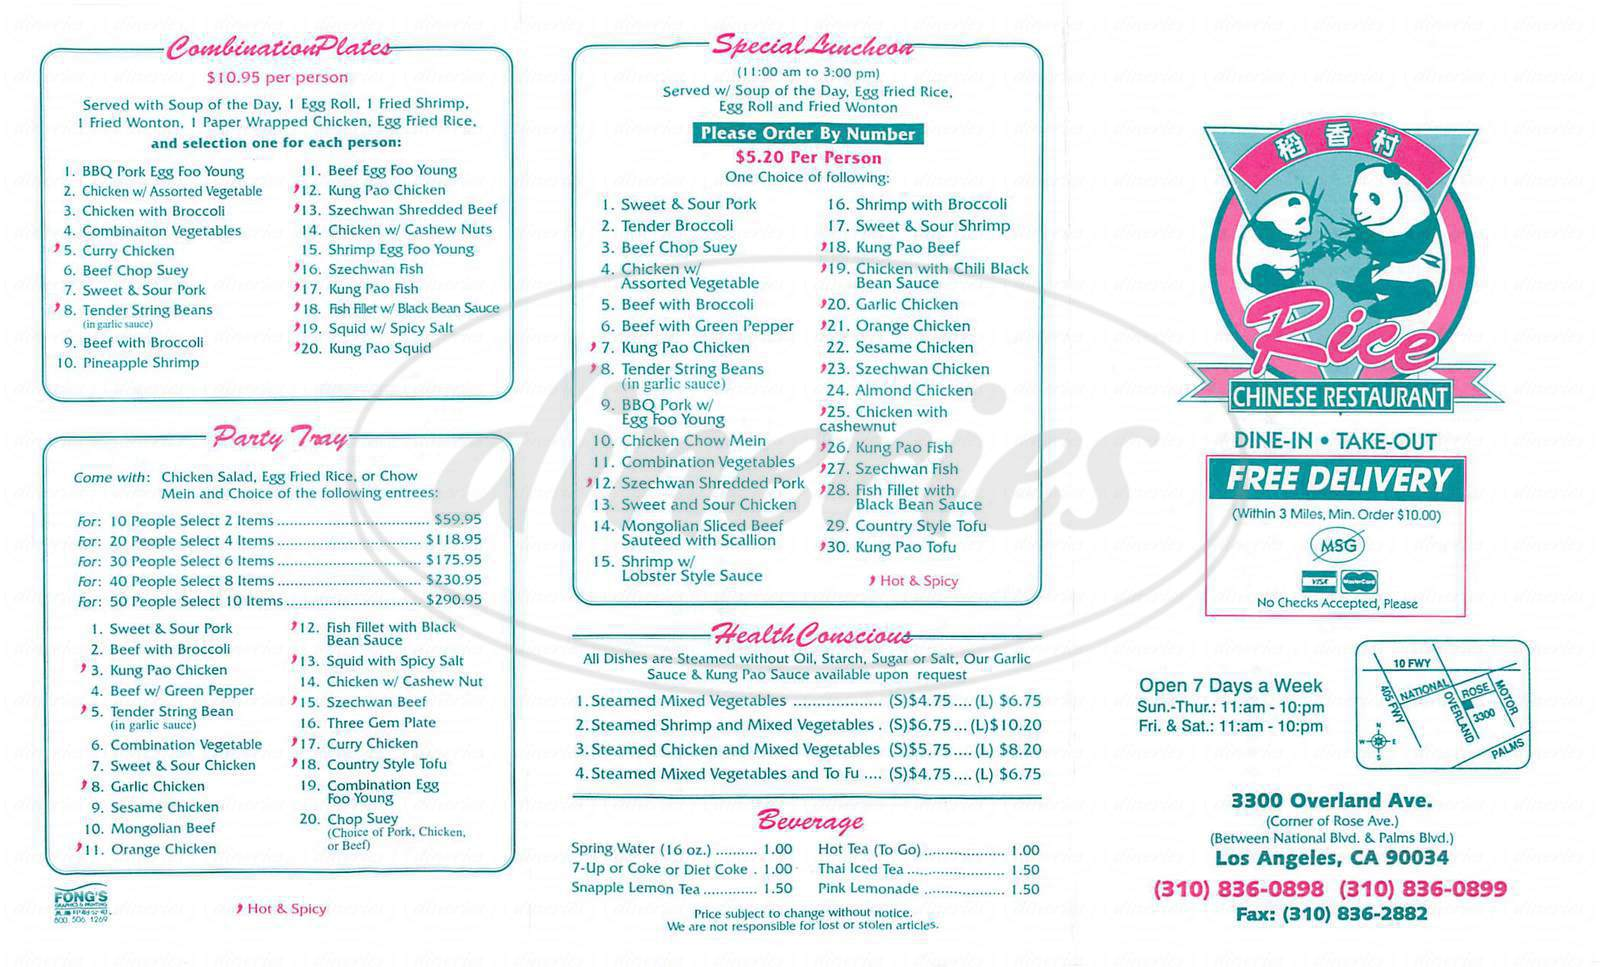 menu for Rice Chinese Restaurant